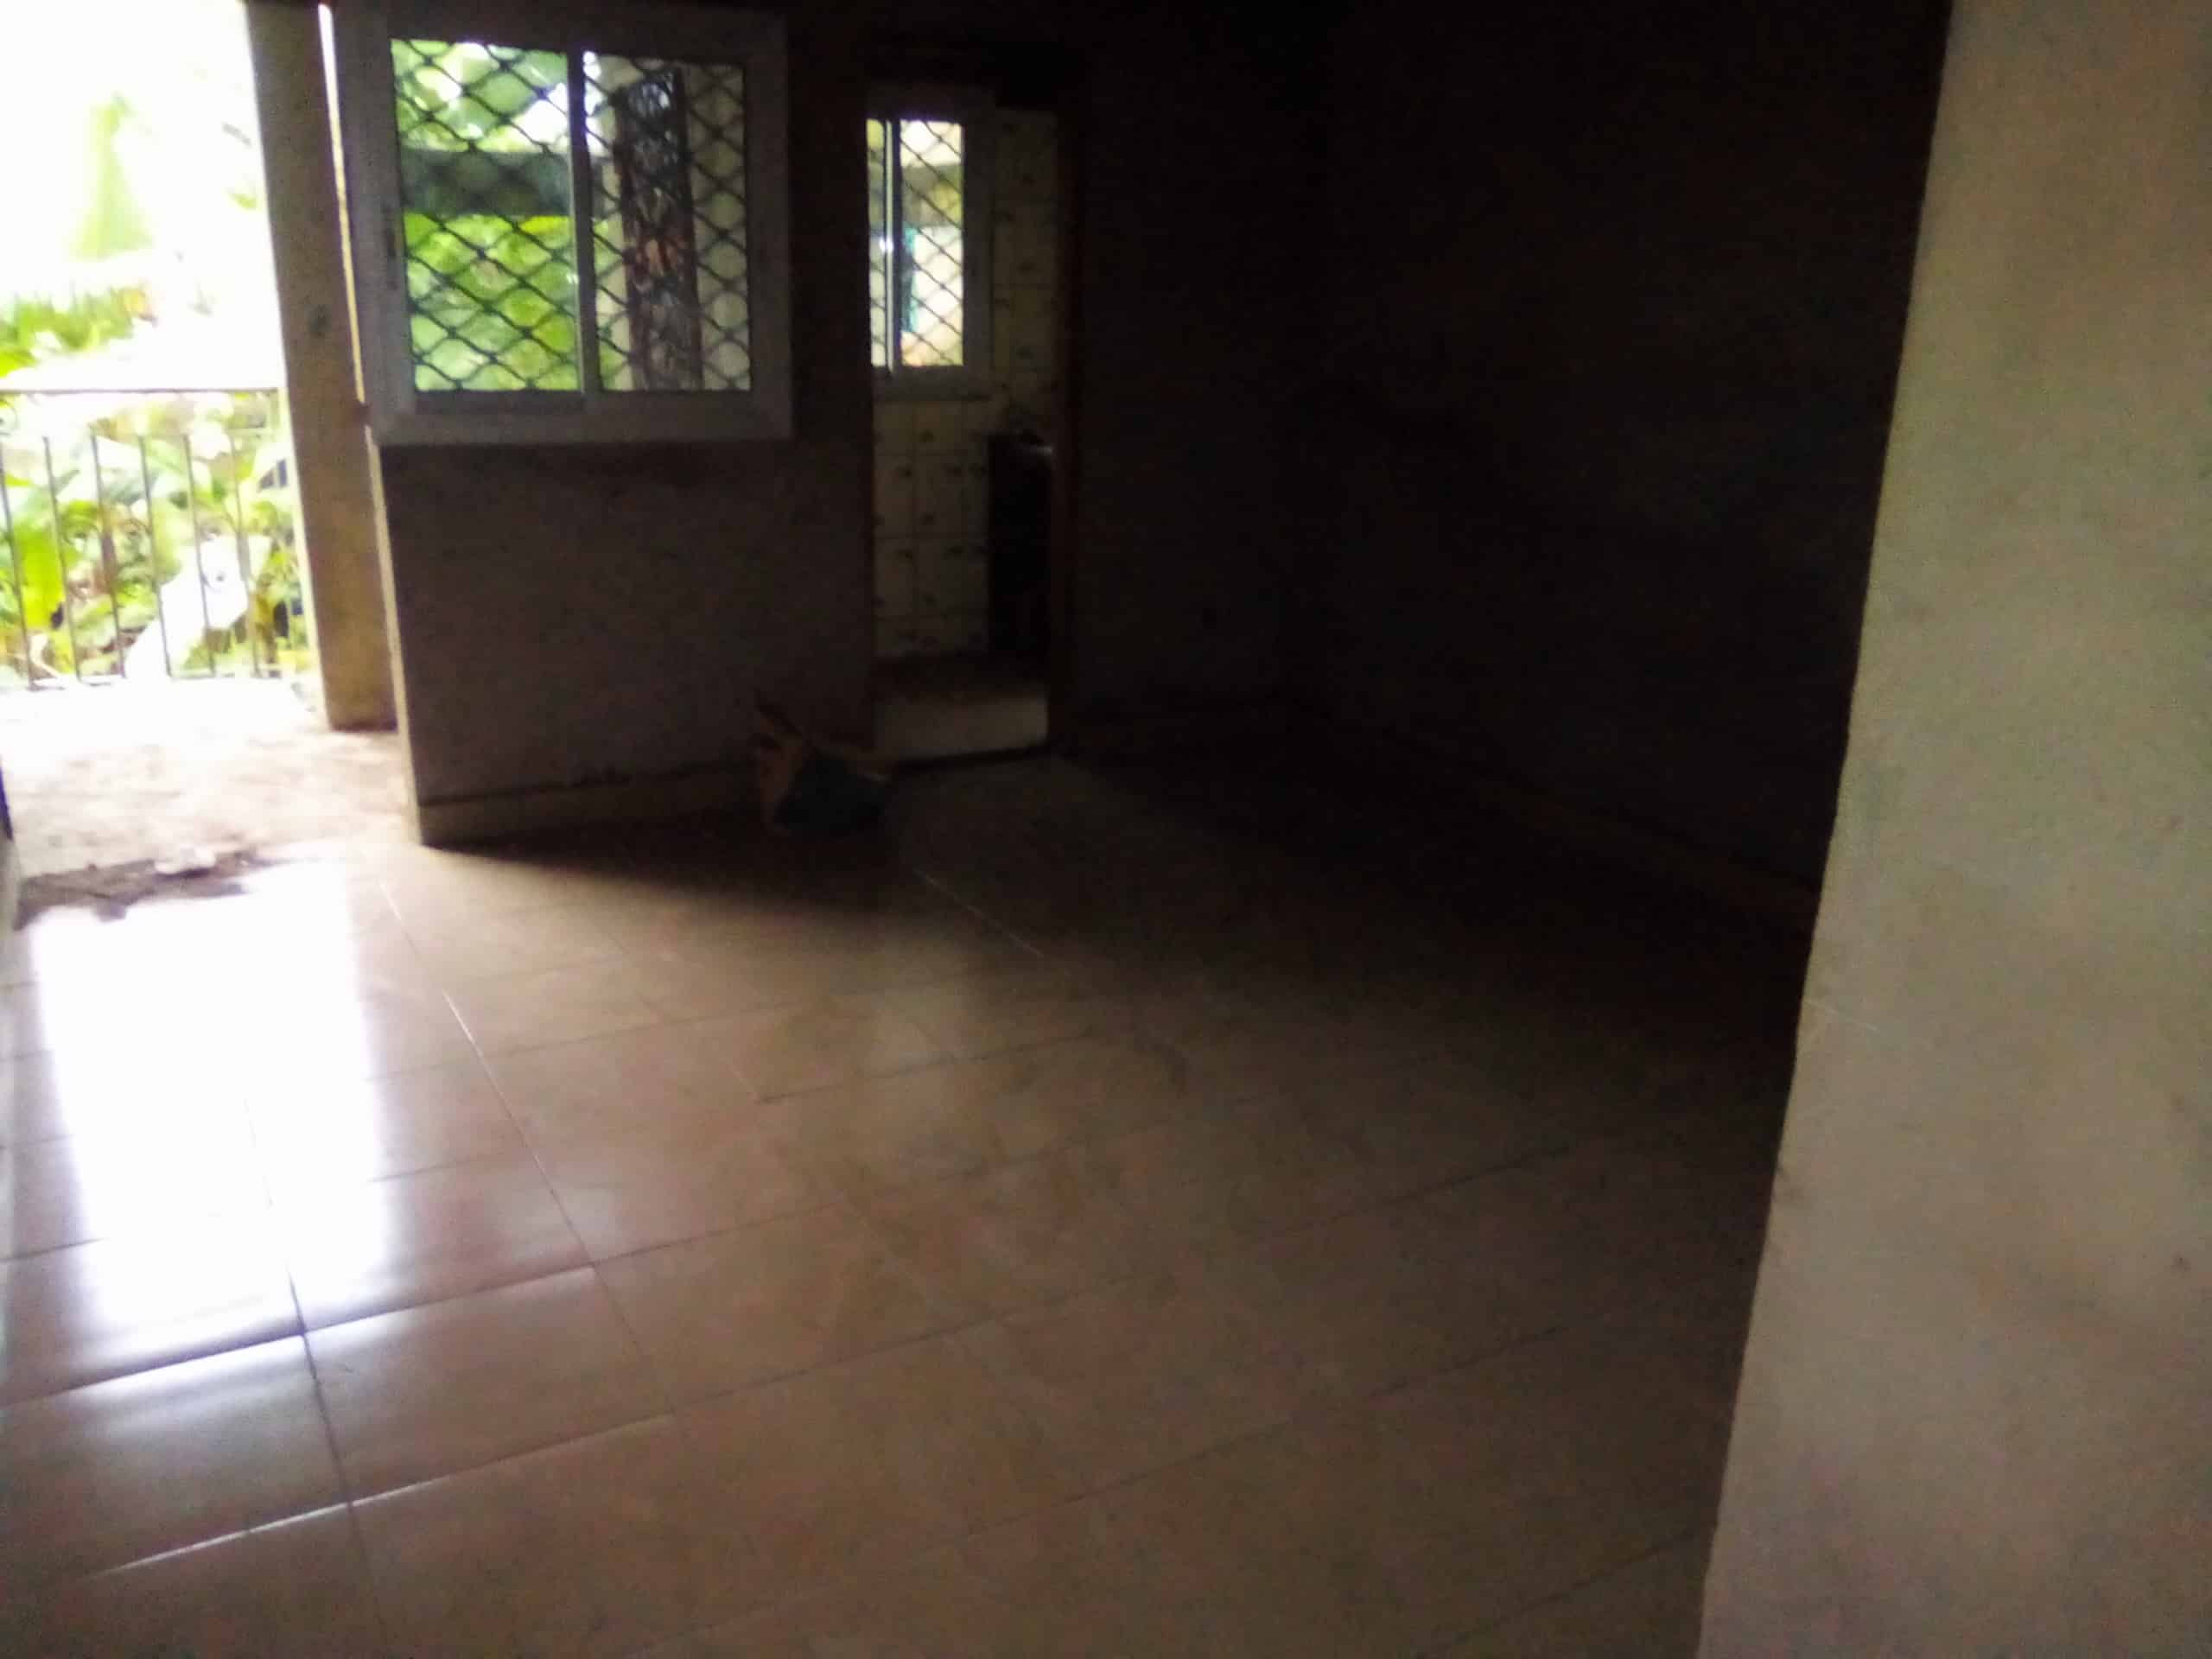 Apartment to rent - Douala, Kotto, kotto - 1 living room(s), 1 bedroom(s), 1 bathroom(s) - 50 000 FCFA / month